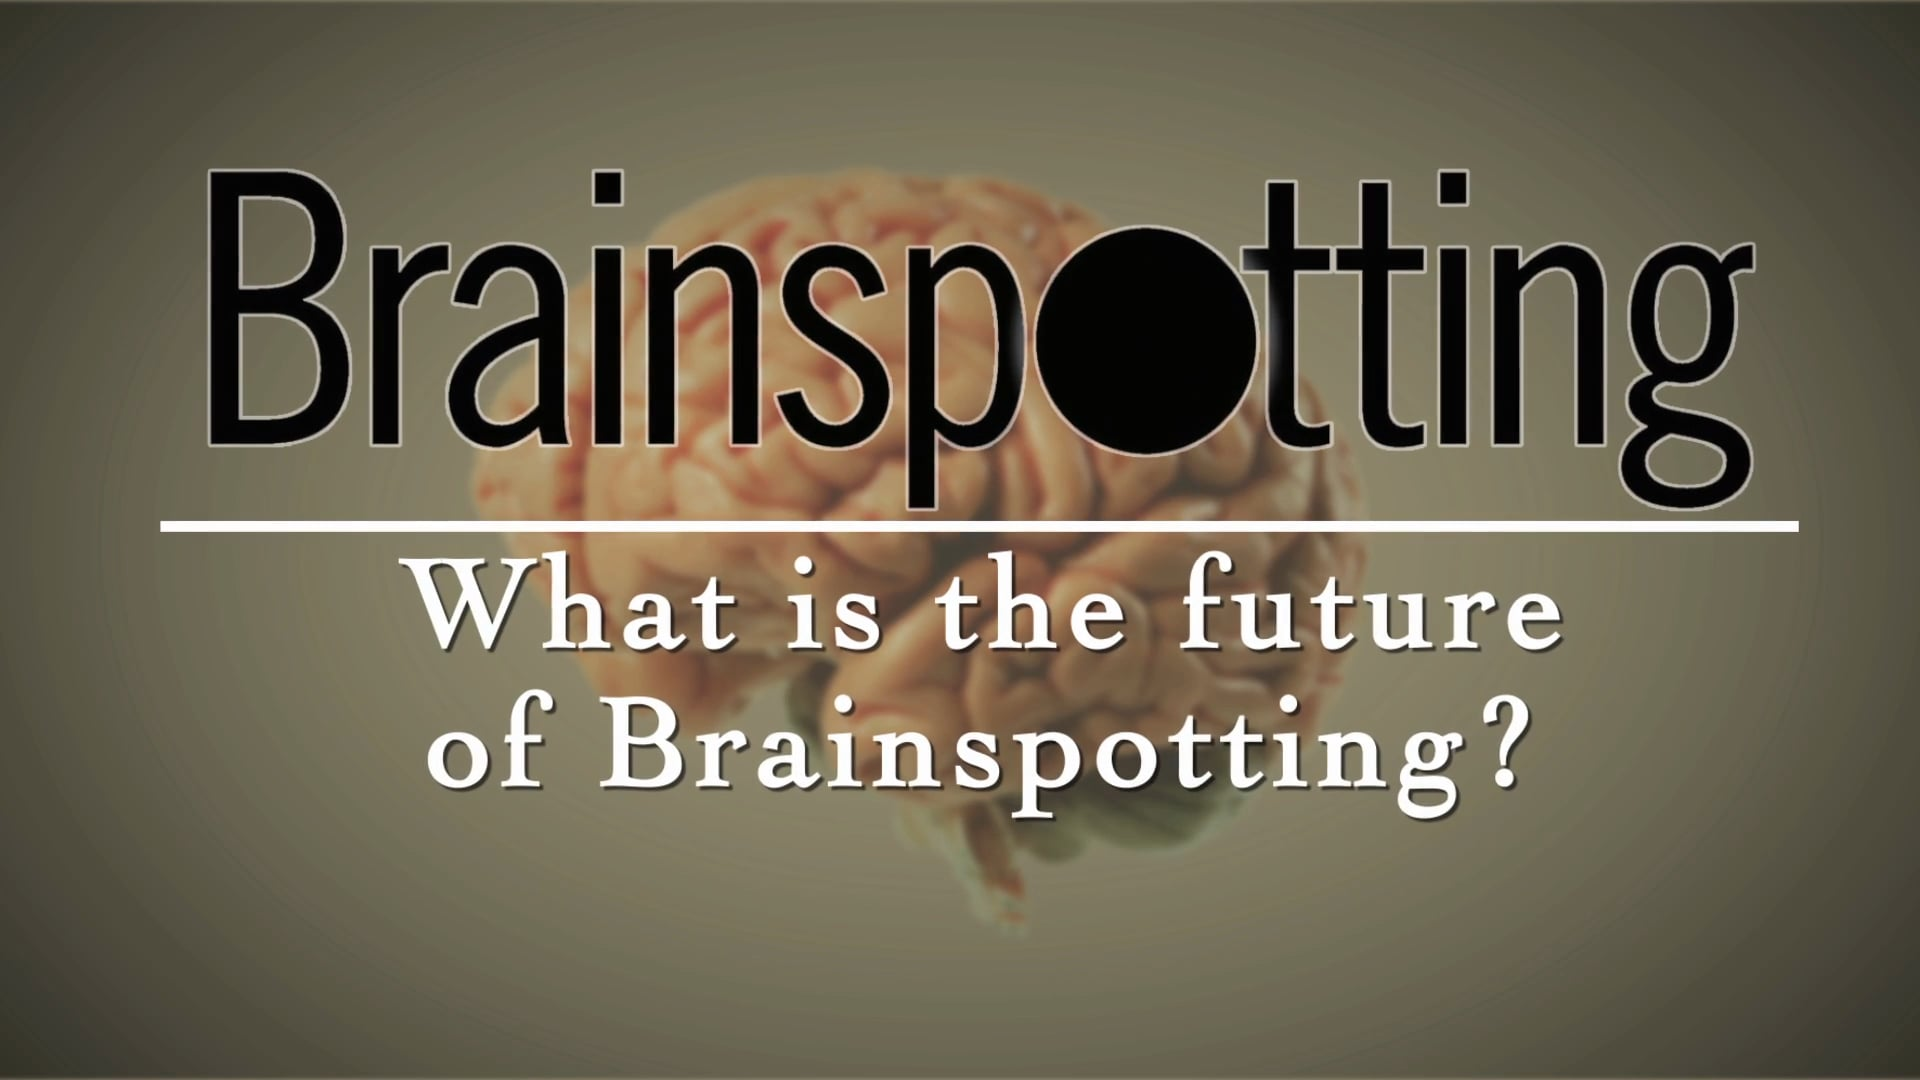 What is the future of Brainspotting?